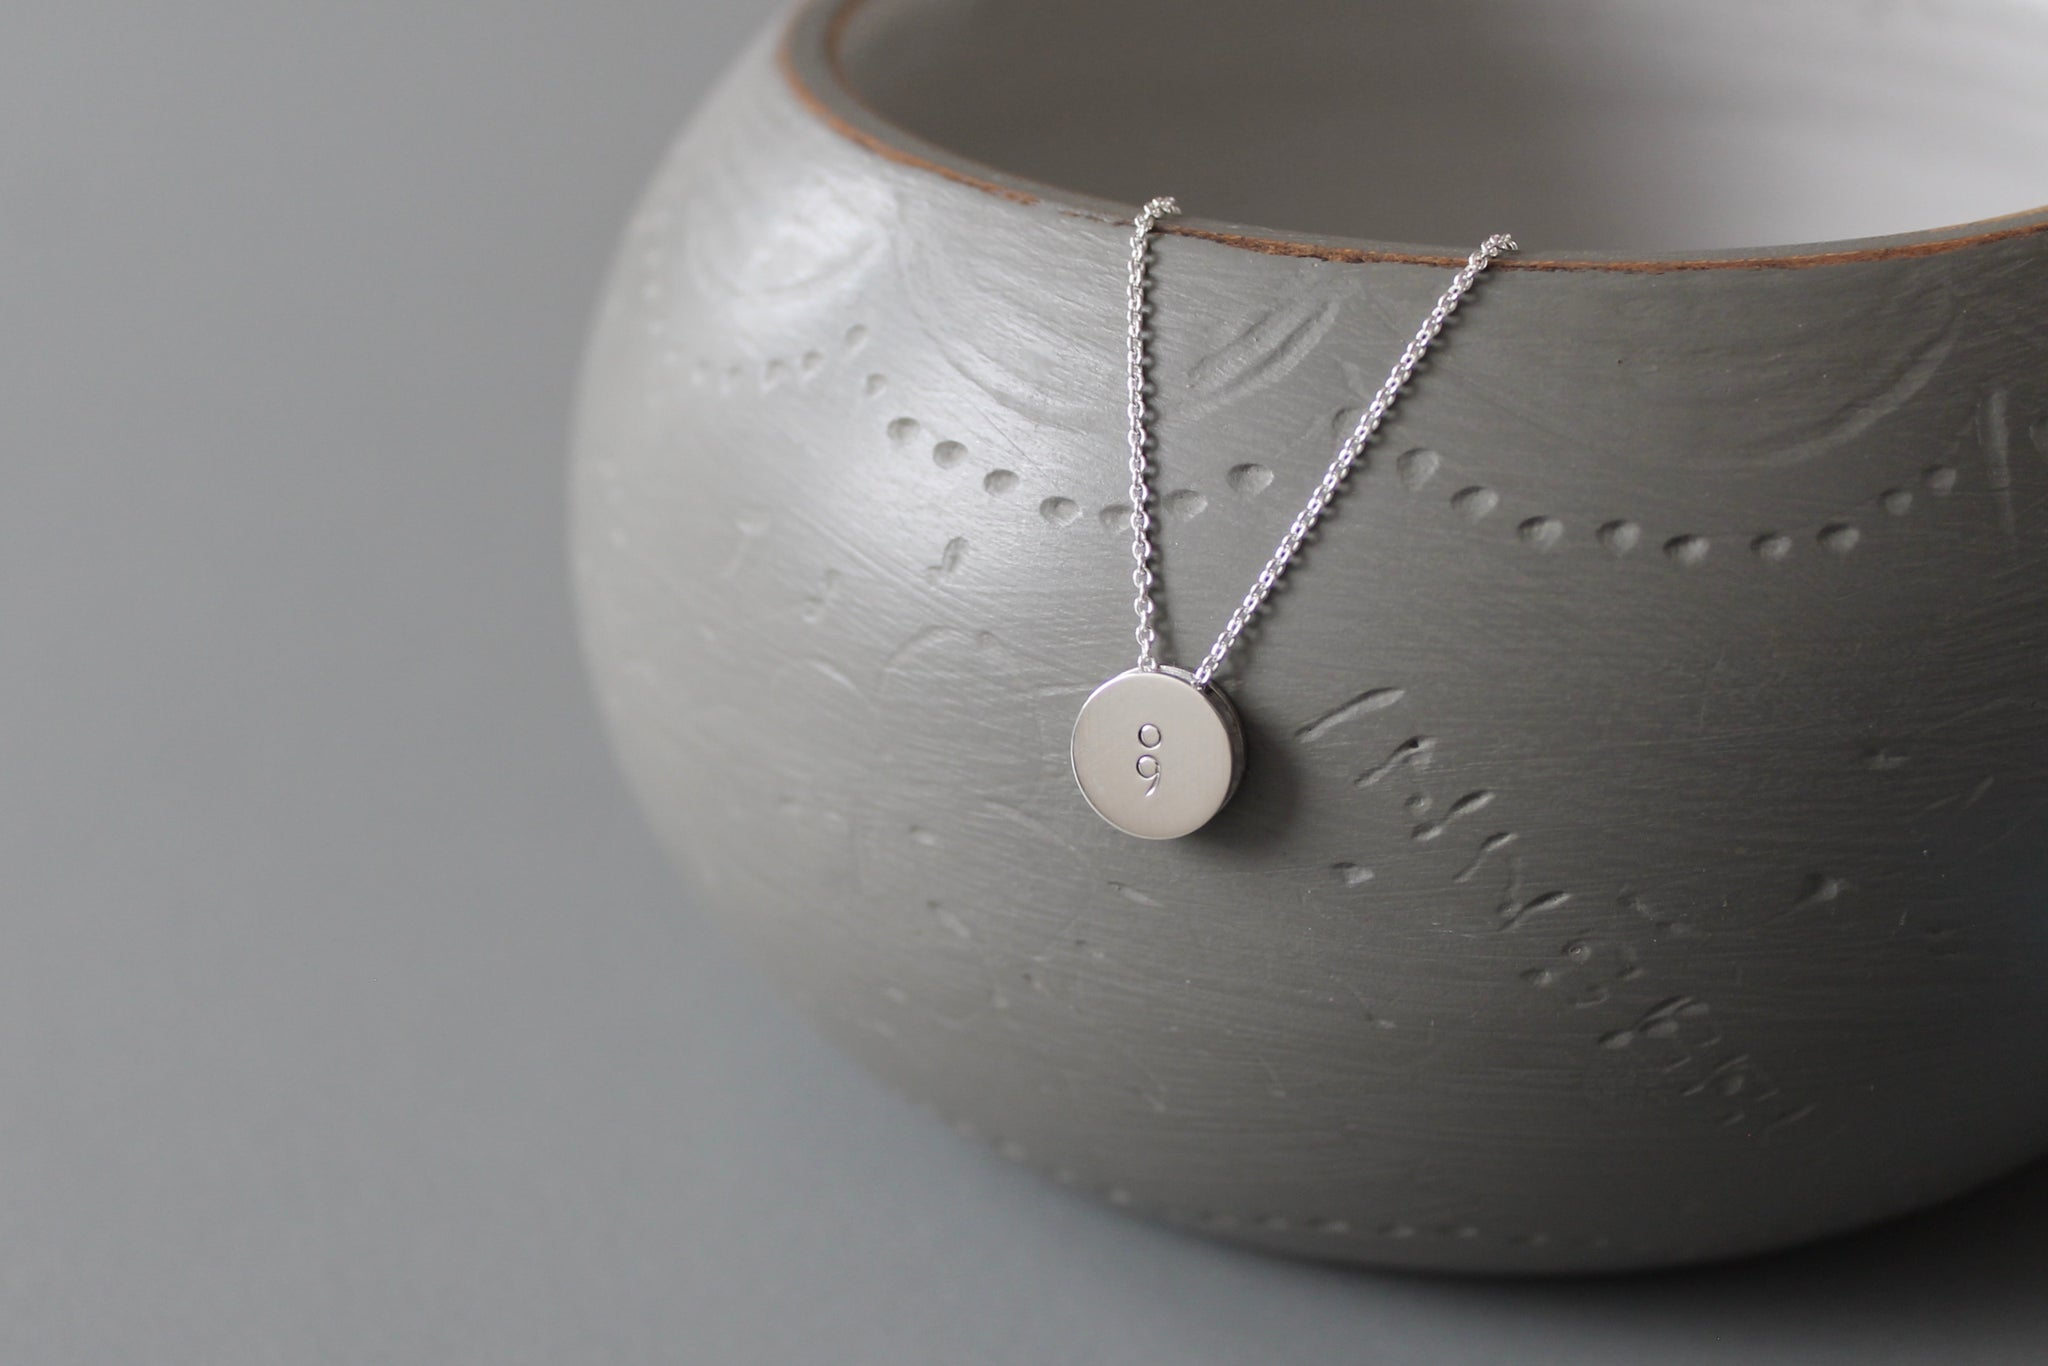 minimalist pendant necklace in sterling silver with semicolon